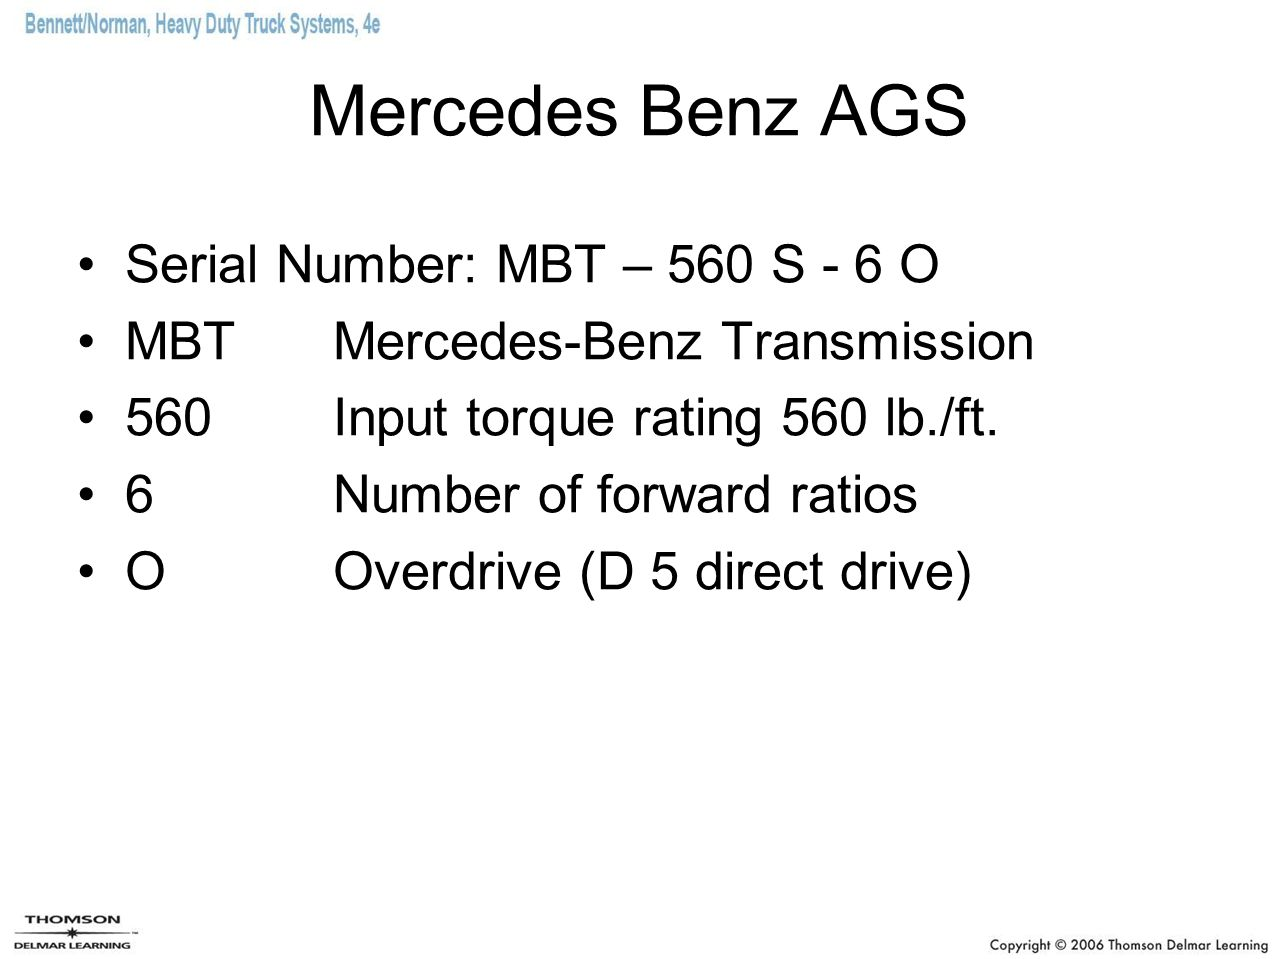 Mercedes Benz AGS Serial Number: MBT – 560 S - 6 O